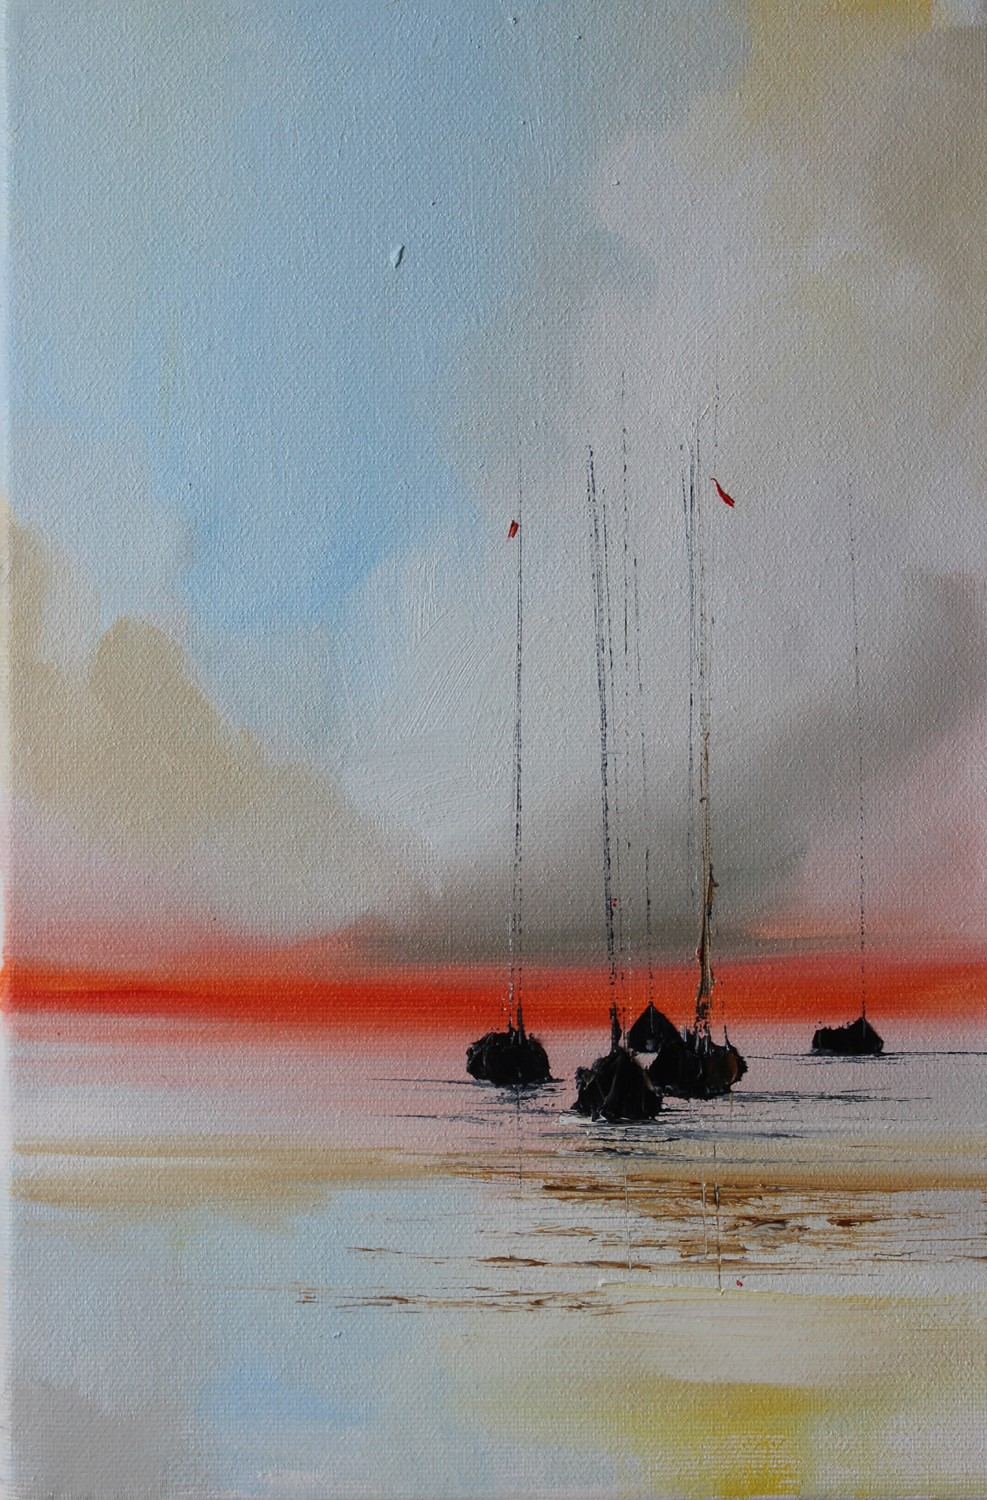 'At the end of the sailing day' by artist Rosanne Barr